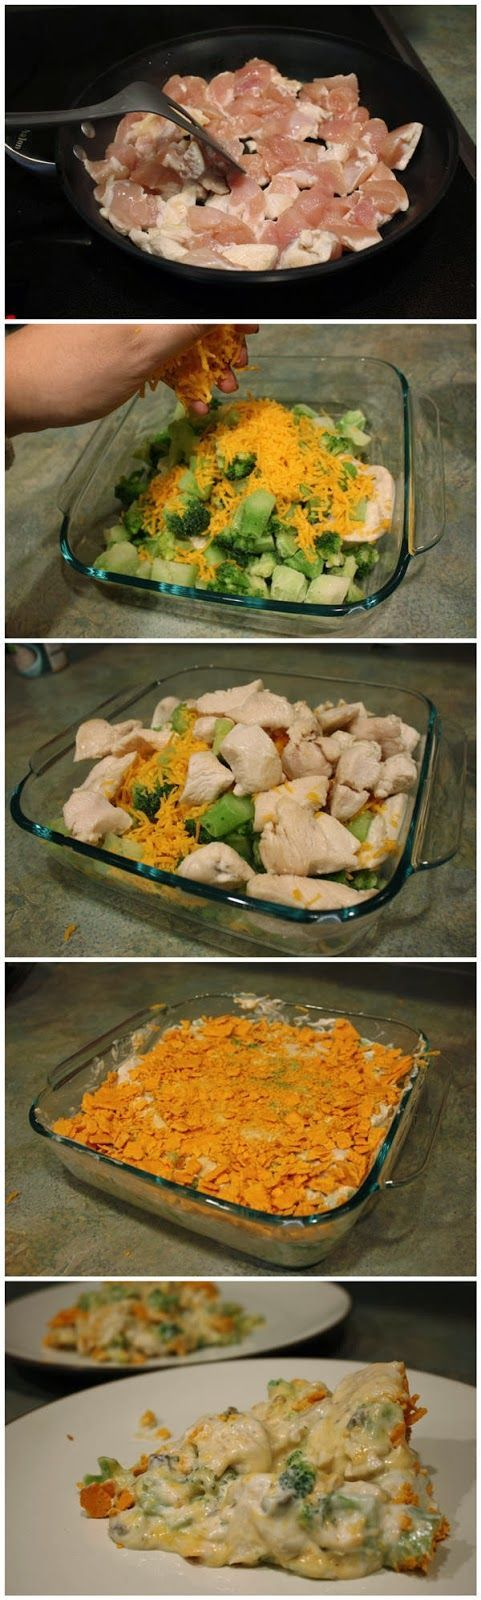 Skinny Chicken Broccoli Casserole: